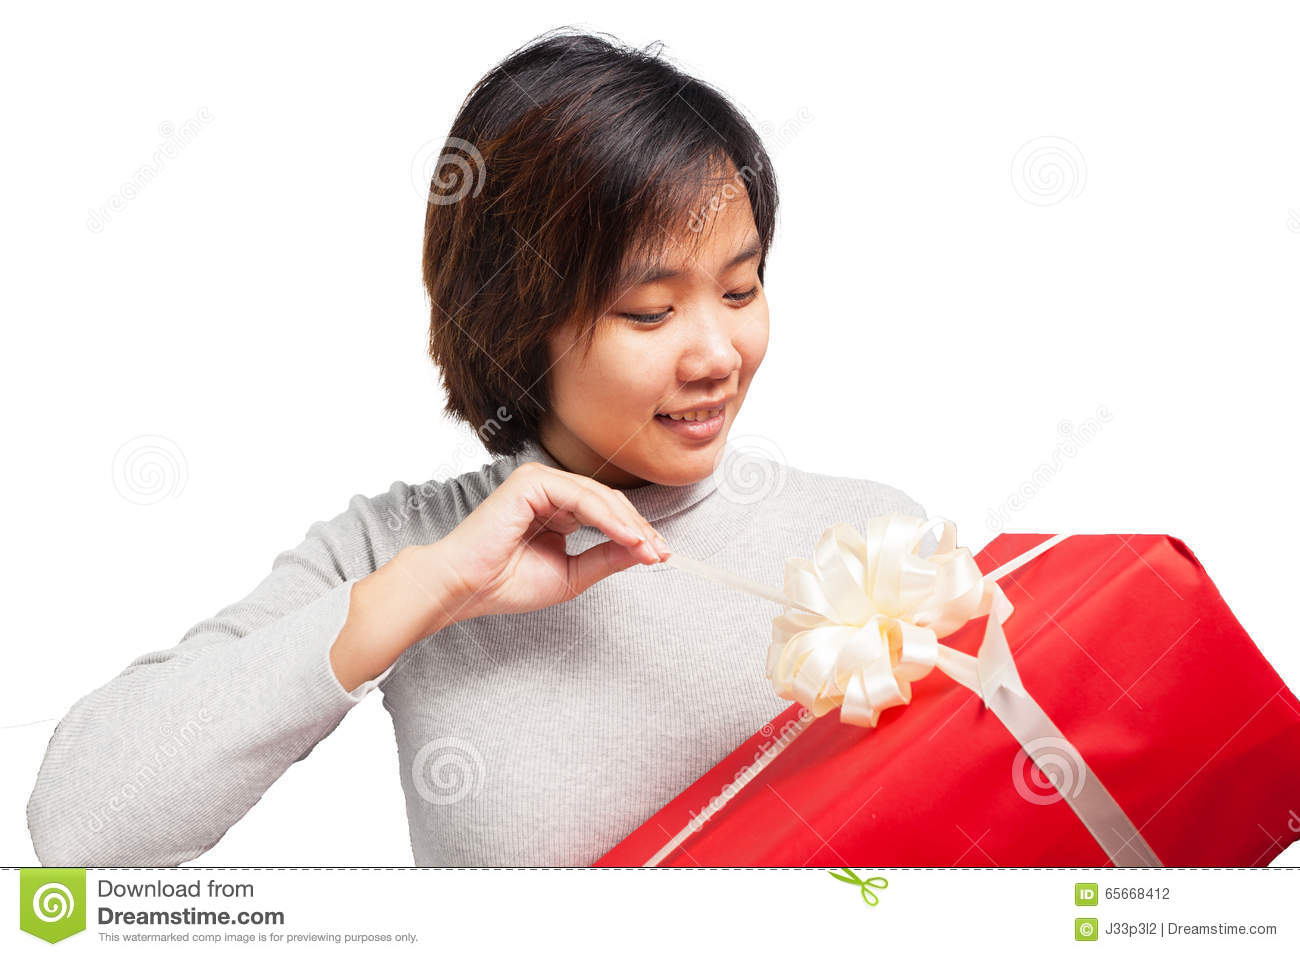 Woman Opening Gift Box With Smile Face Stock Photo - Image ...